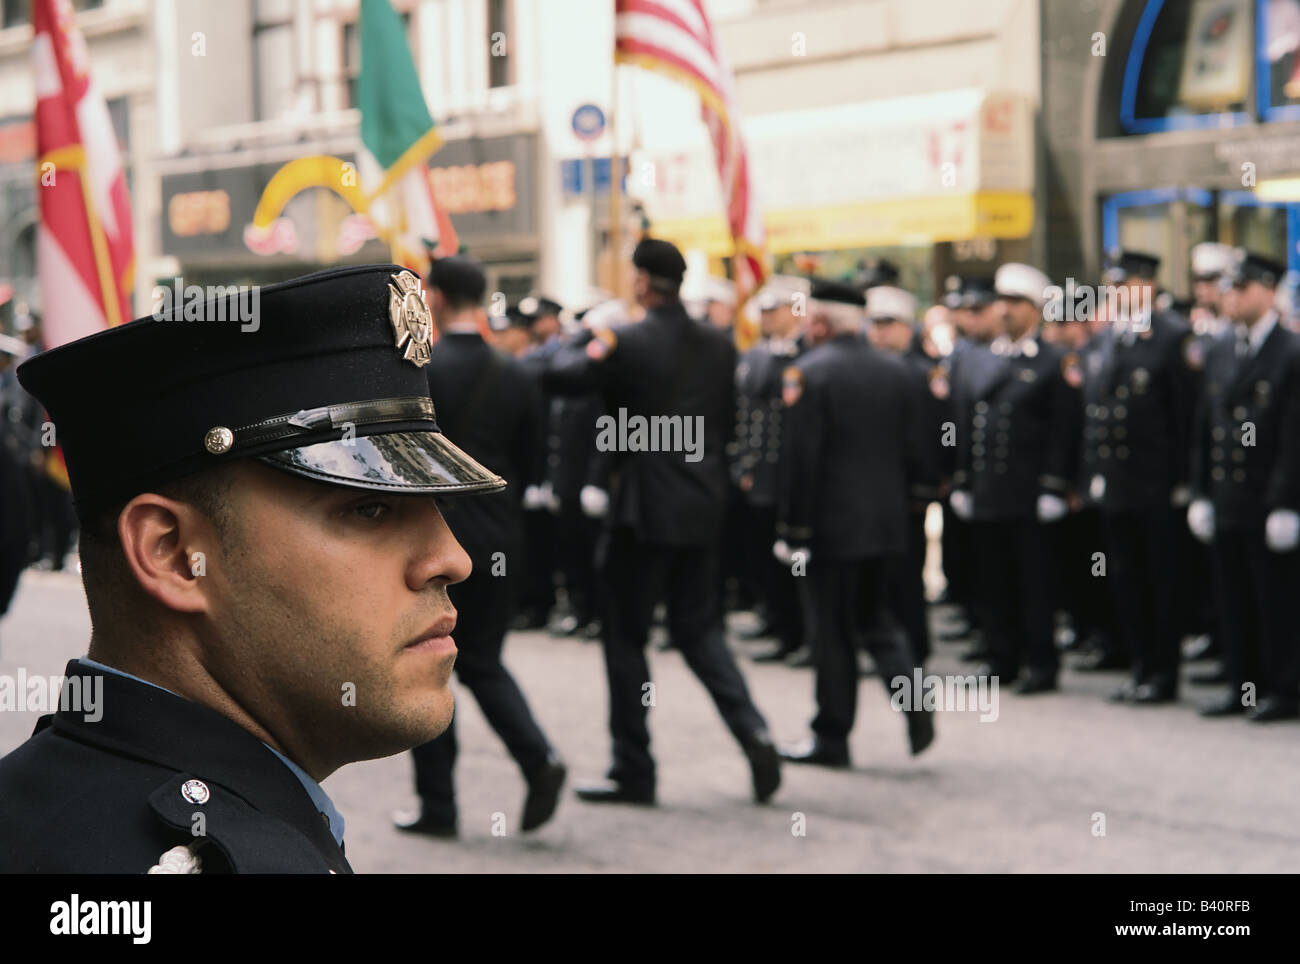 New York City firefighter views procession following funeral of fallen comrade - Stock Image